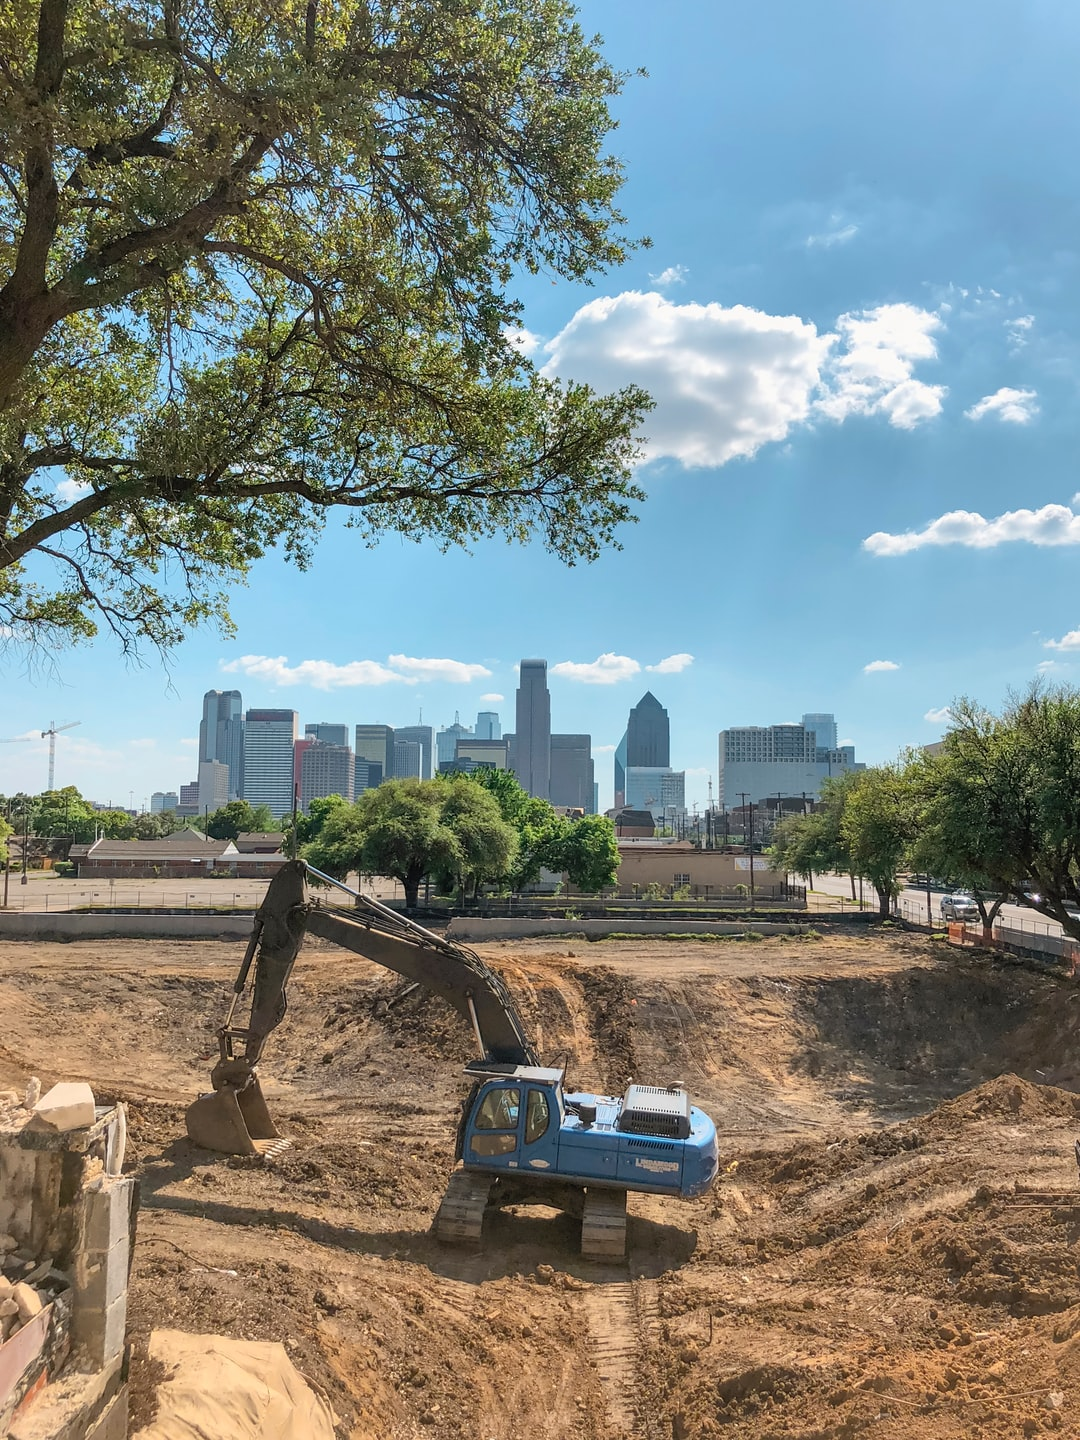 A construction zone near downtown Dallas with a blue excavator